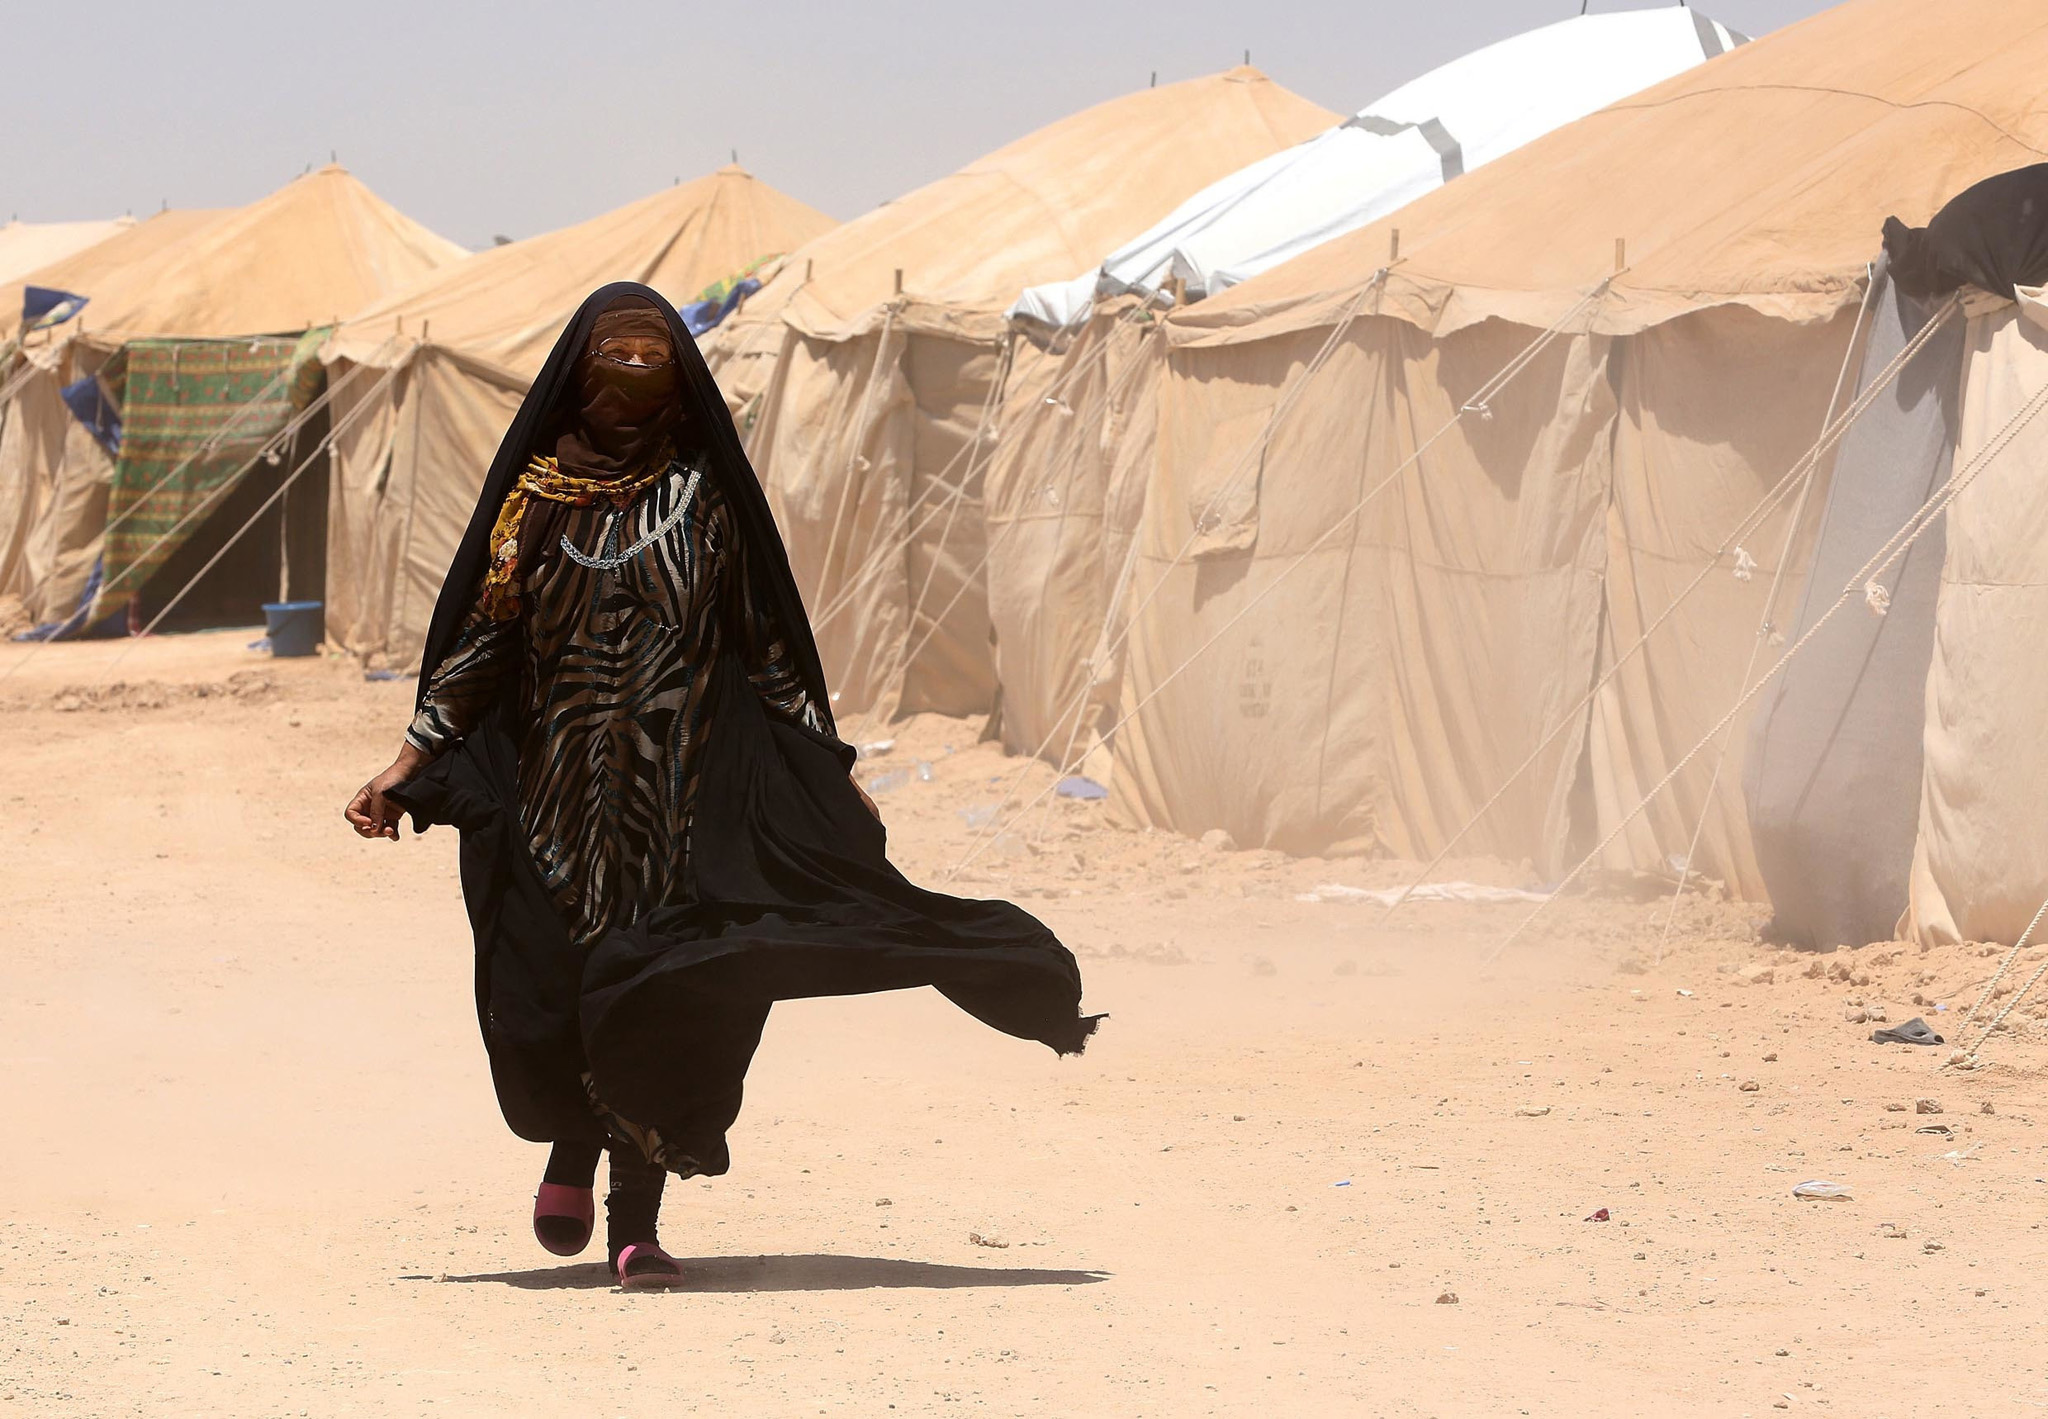 An Internally displaced woman arrives to a camp outside Fallujah, Iraq, Monday, June 14, 2016. The U.N. estimates about 50,000 civilians are trapped inside the city and that 42,000 people have fled Fallujah since a military operation to retake the city began in late May. Organizations such as MSF and The Norwegian Refugee Council say the number of those who've fled is closer to 30,000, lower than the U.N. estimate. (AP Photo/Hadi Mizban)